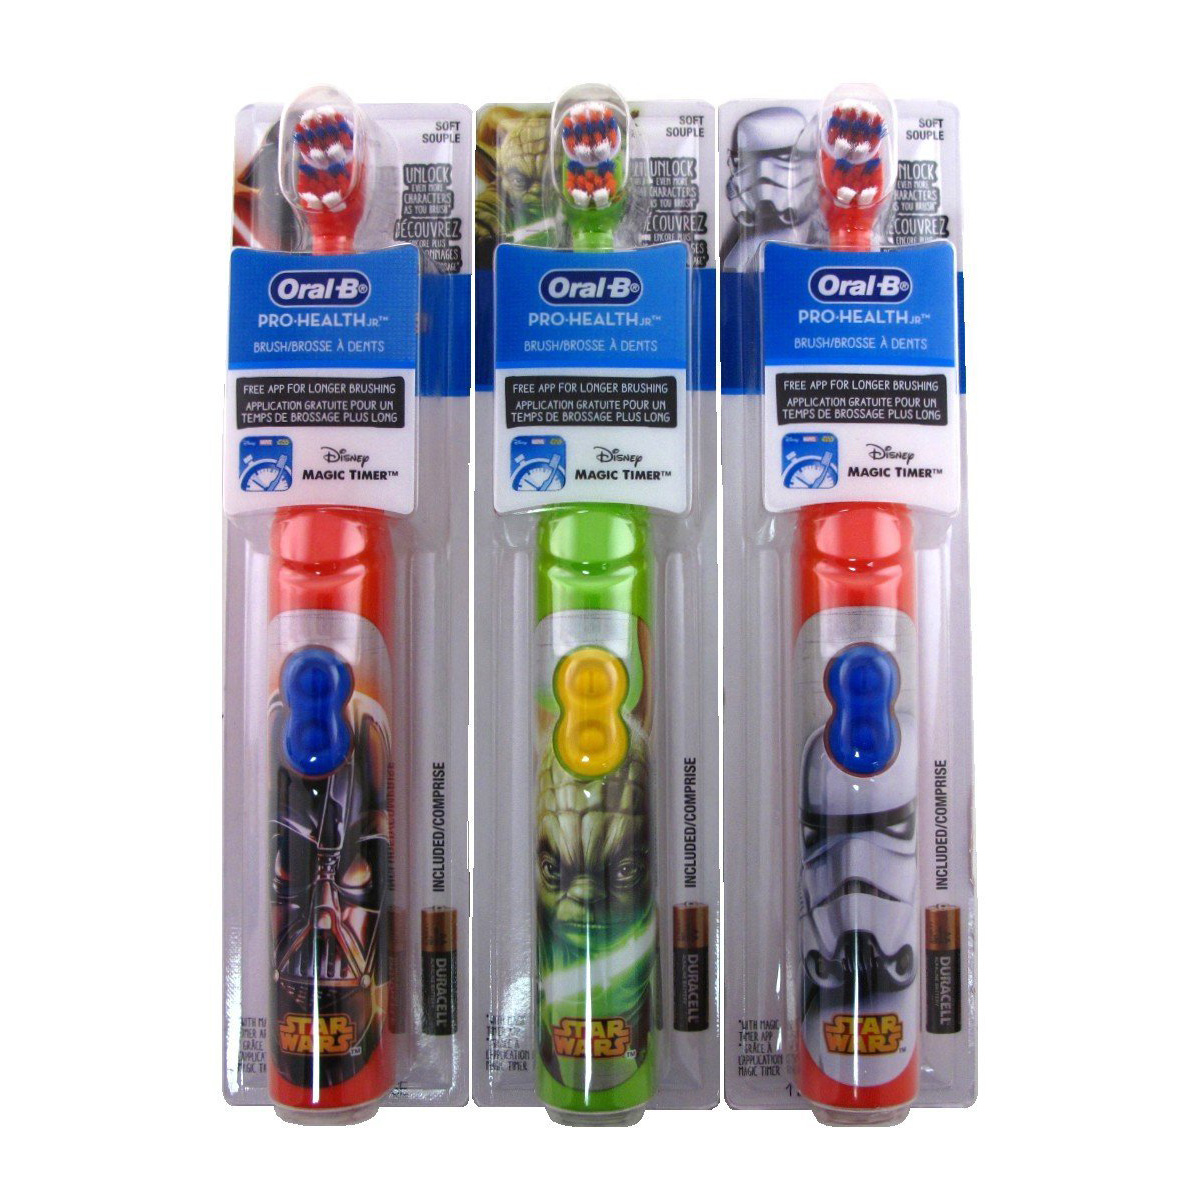 Oral-B Pro-Health Jr. Star Wars Battery Toothbrush Various C